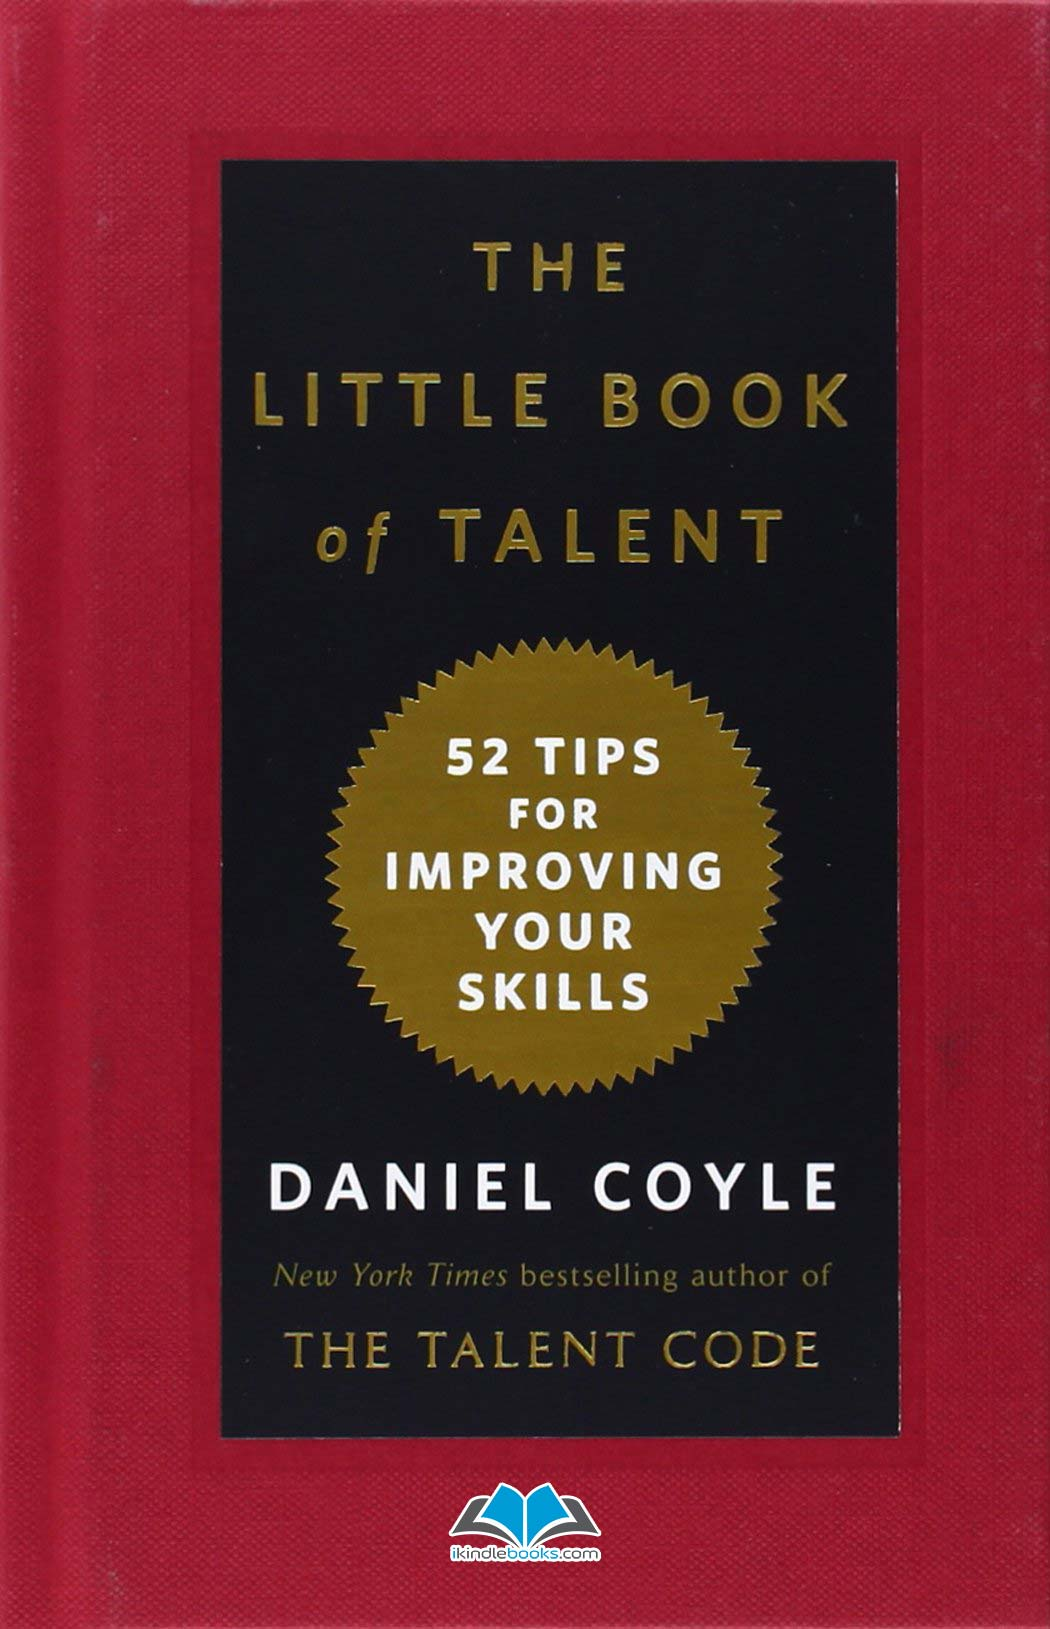 Download ebook The Little Book of Talent